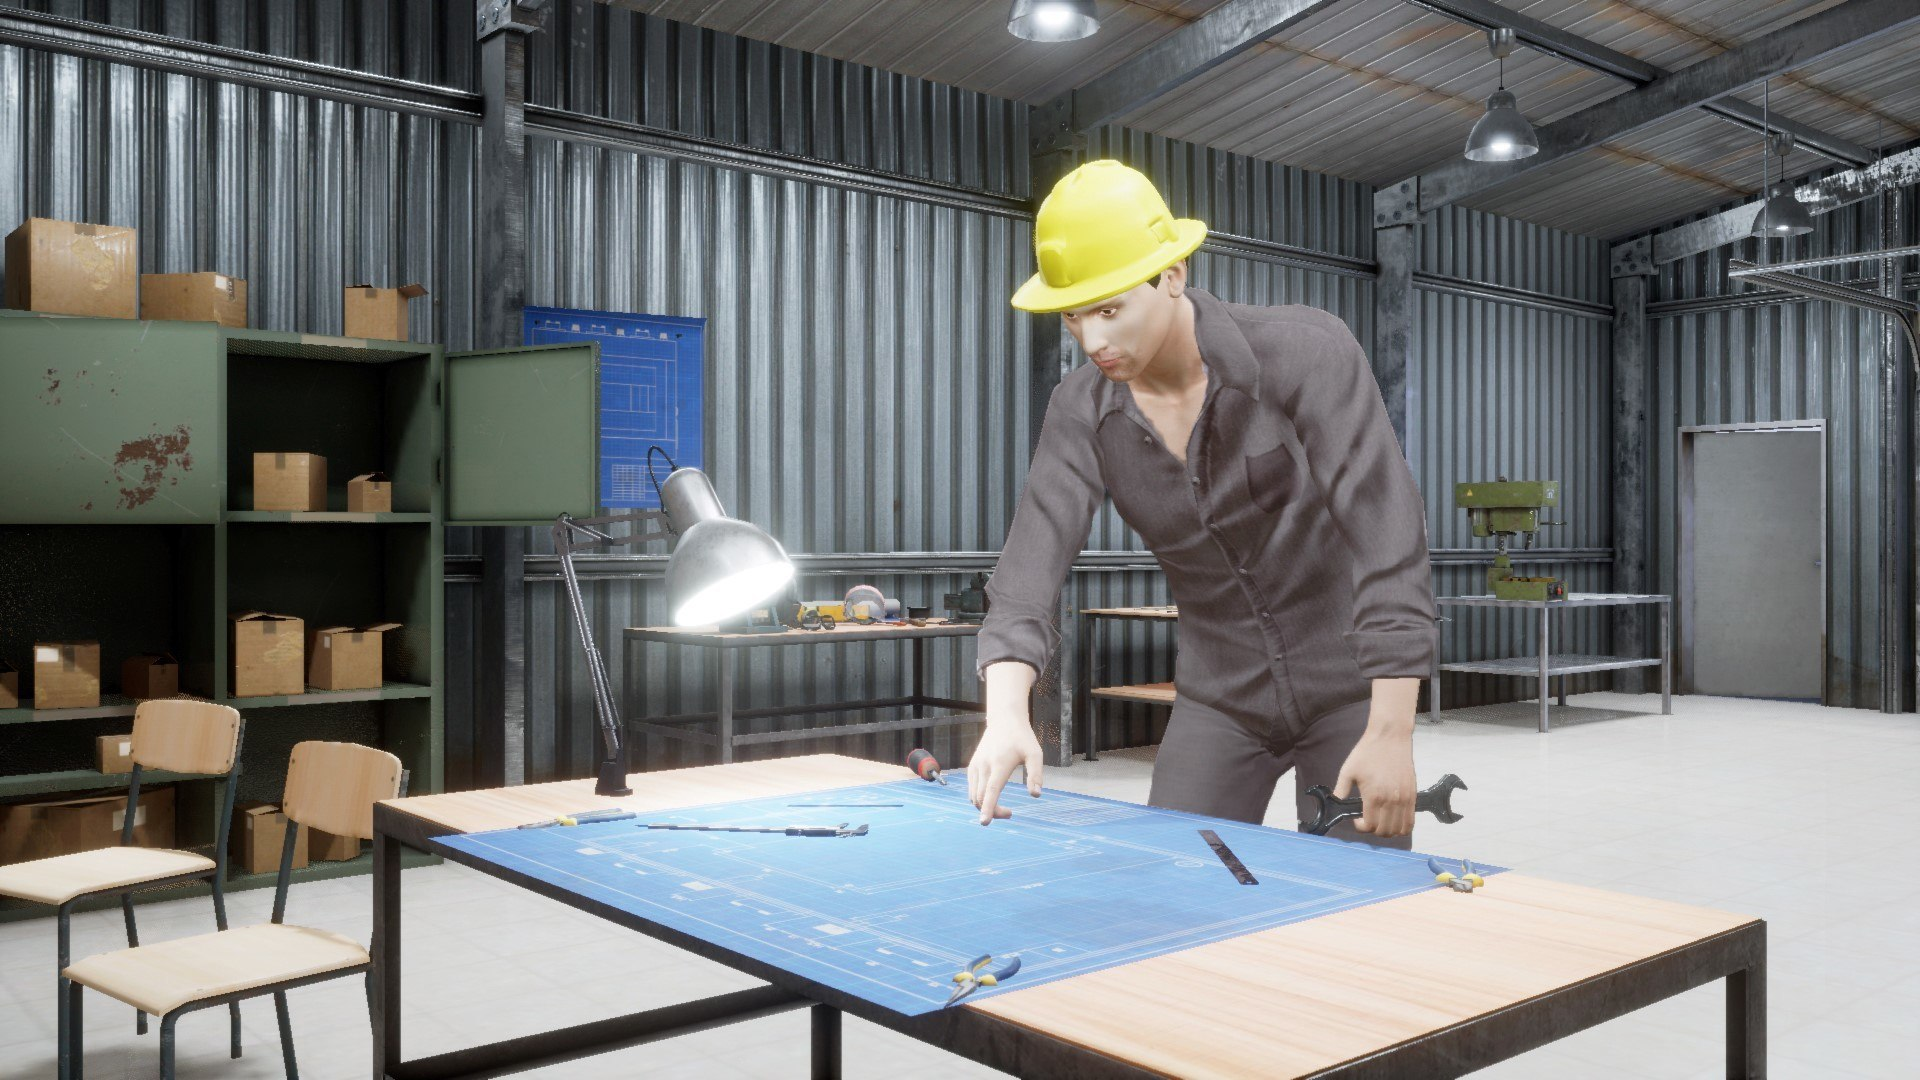 Figure 4: A virtual human performing activities in a 3D workshop scenario.